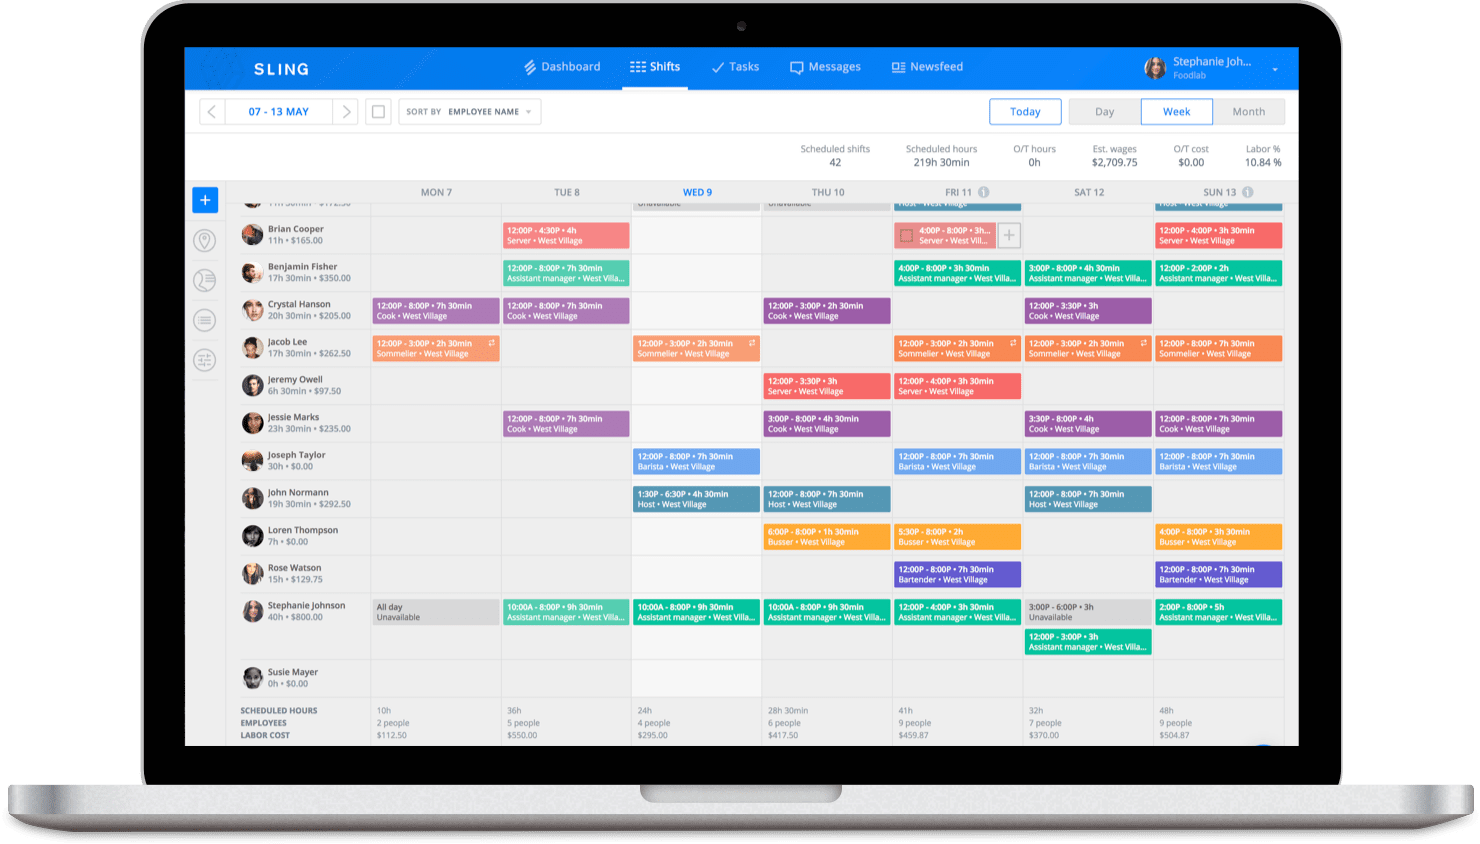 Scheduling using Sling